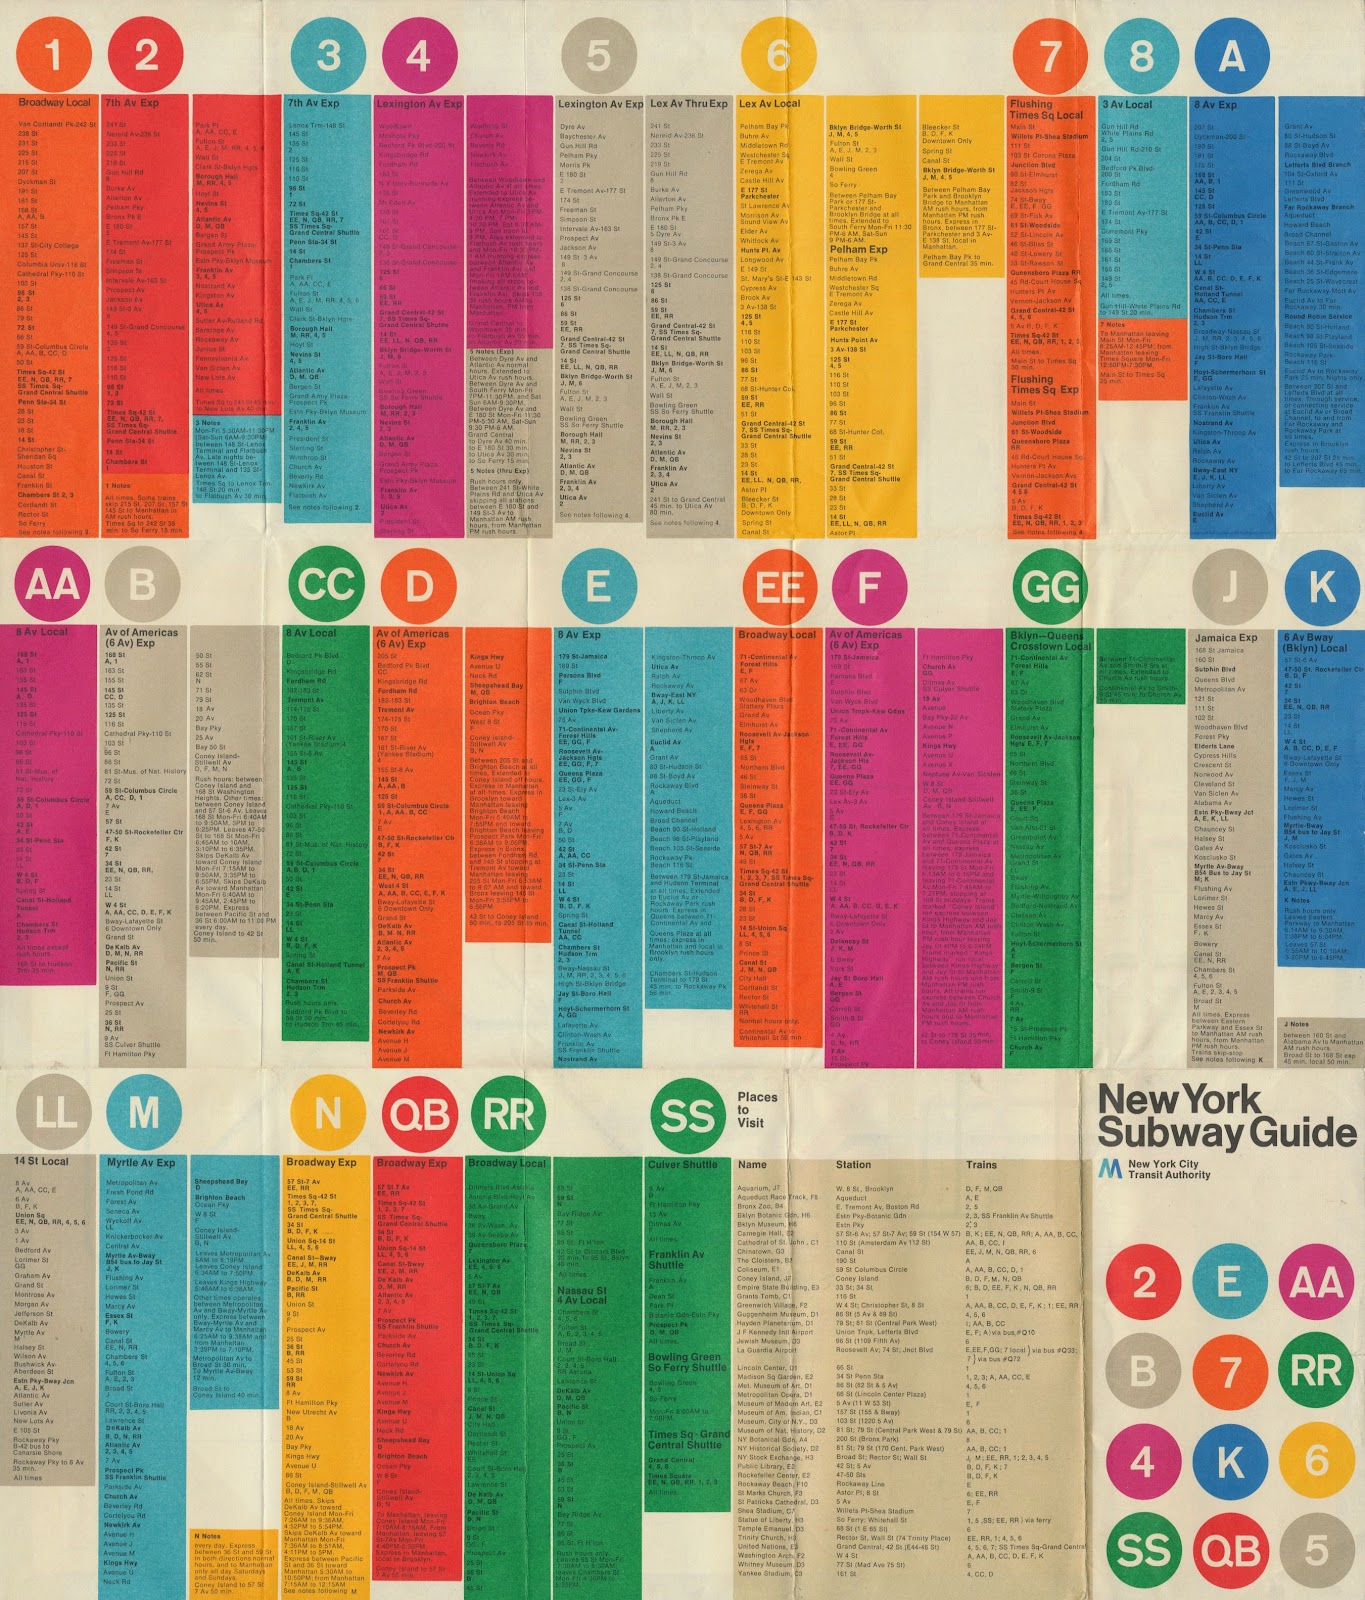 Nyc Subway Map Paper.Tenth Letter Of The Alphabet Typography New York City Subway Maps